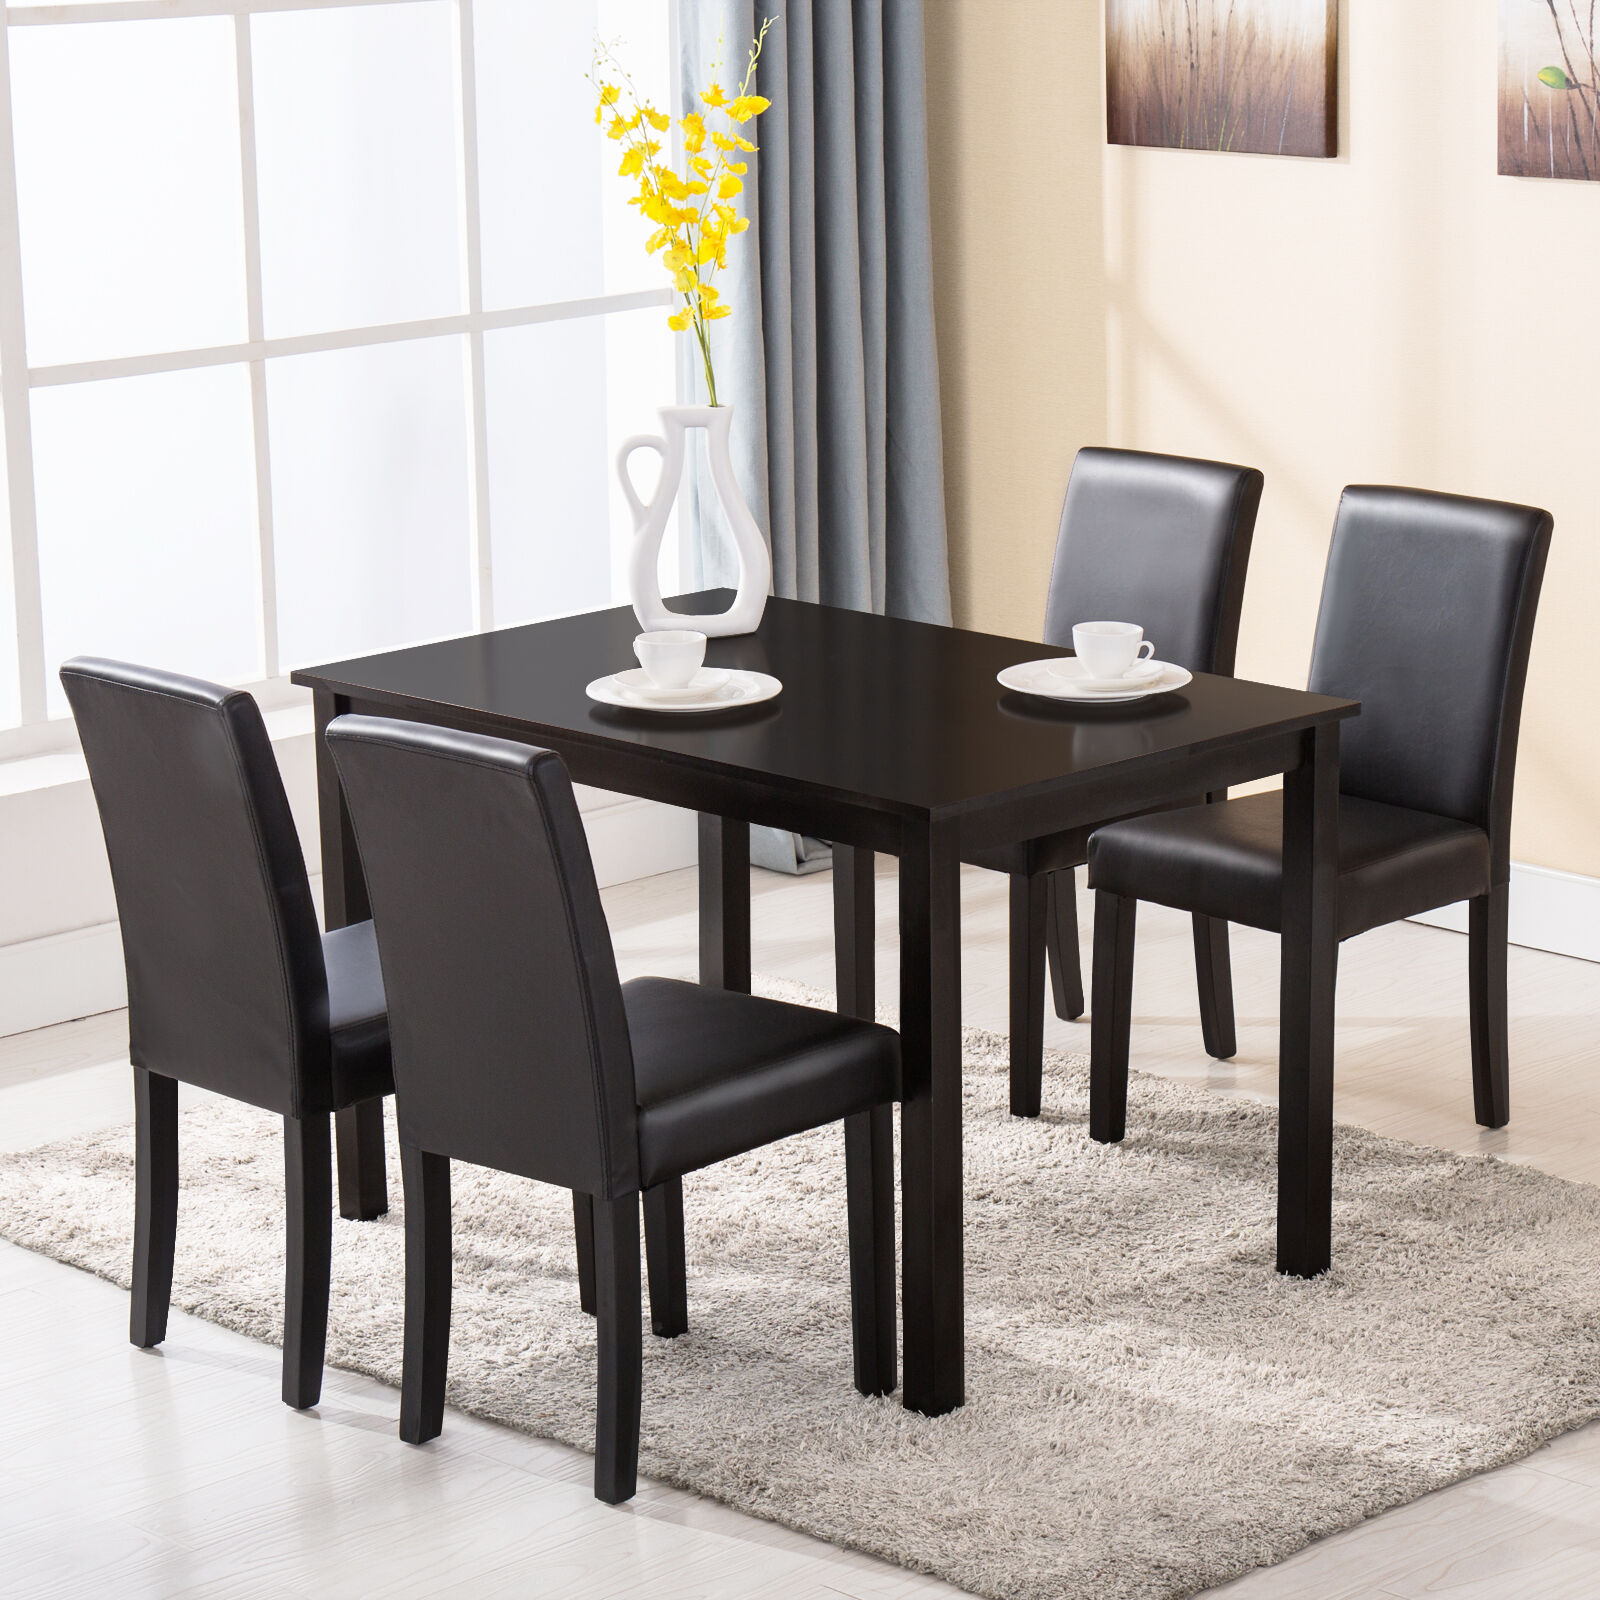 Breakfast Chairs Details About 5 Piece Dining Table Set 4 Chairs Wood Kitchen Dinette Room Breakfast Furniture